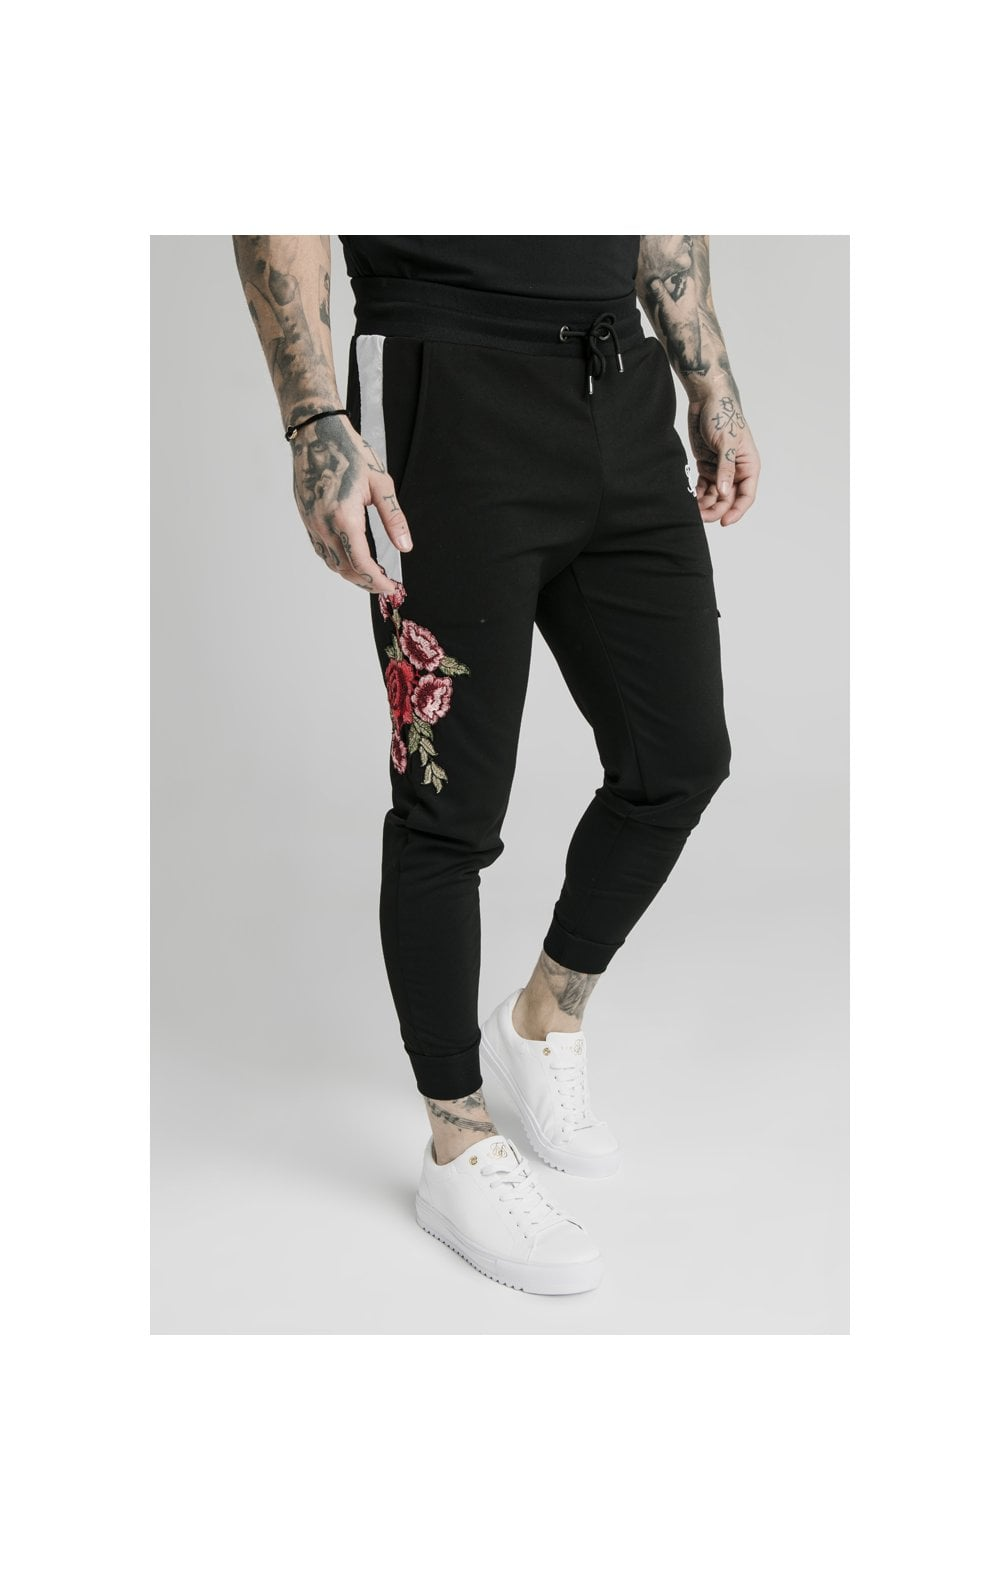 SikSilk Appliqu�� Panelled Fitted Joggers - Black (3)